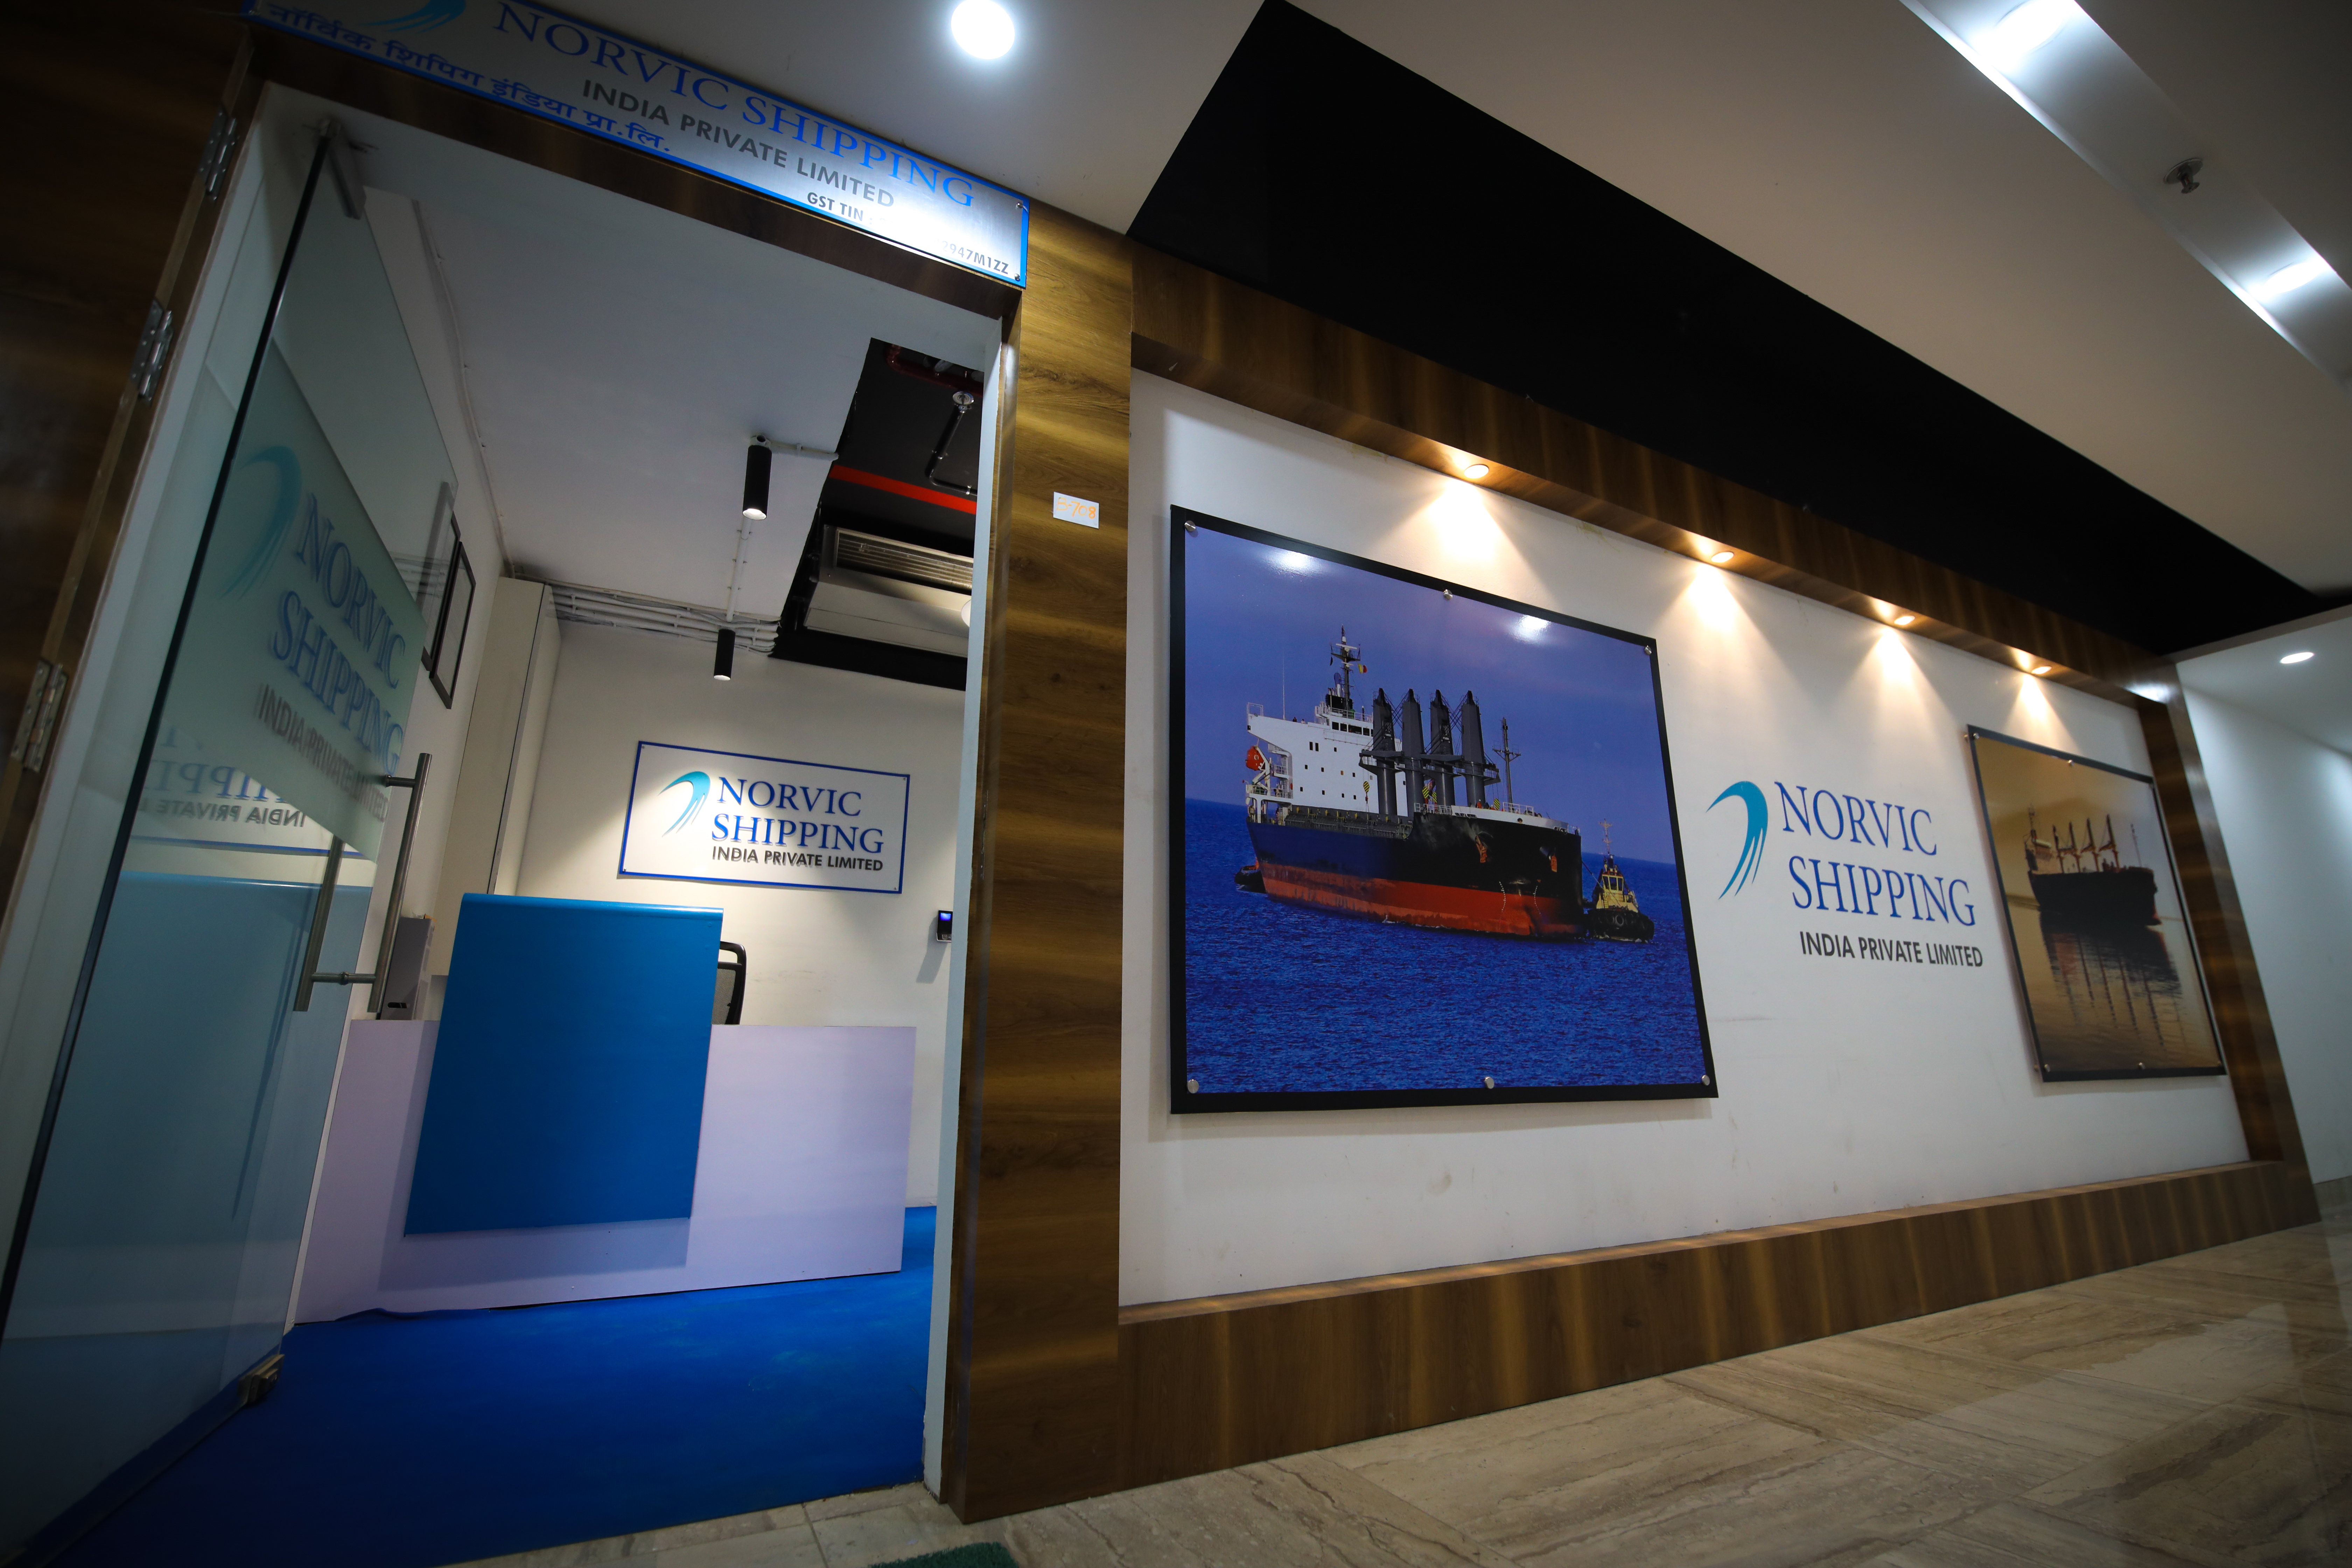 Mumbai - See contact details for Norvic Shipping India ltd in Mumbai